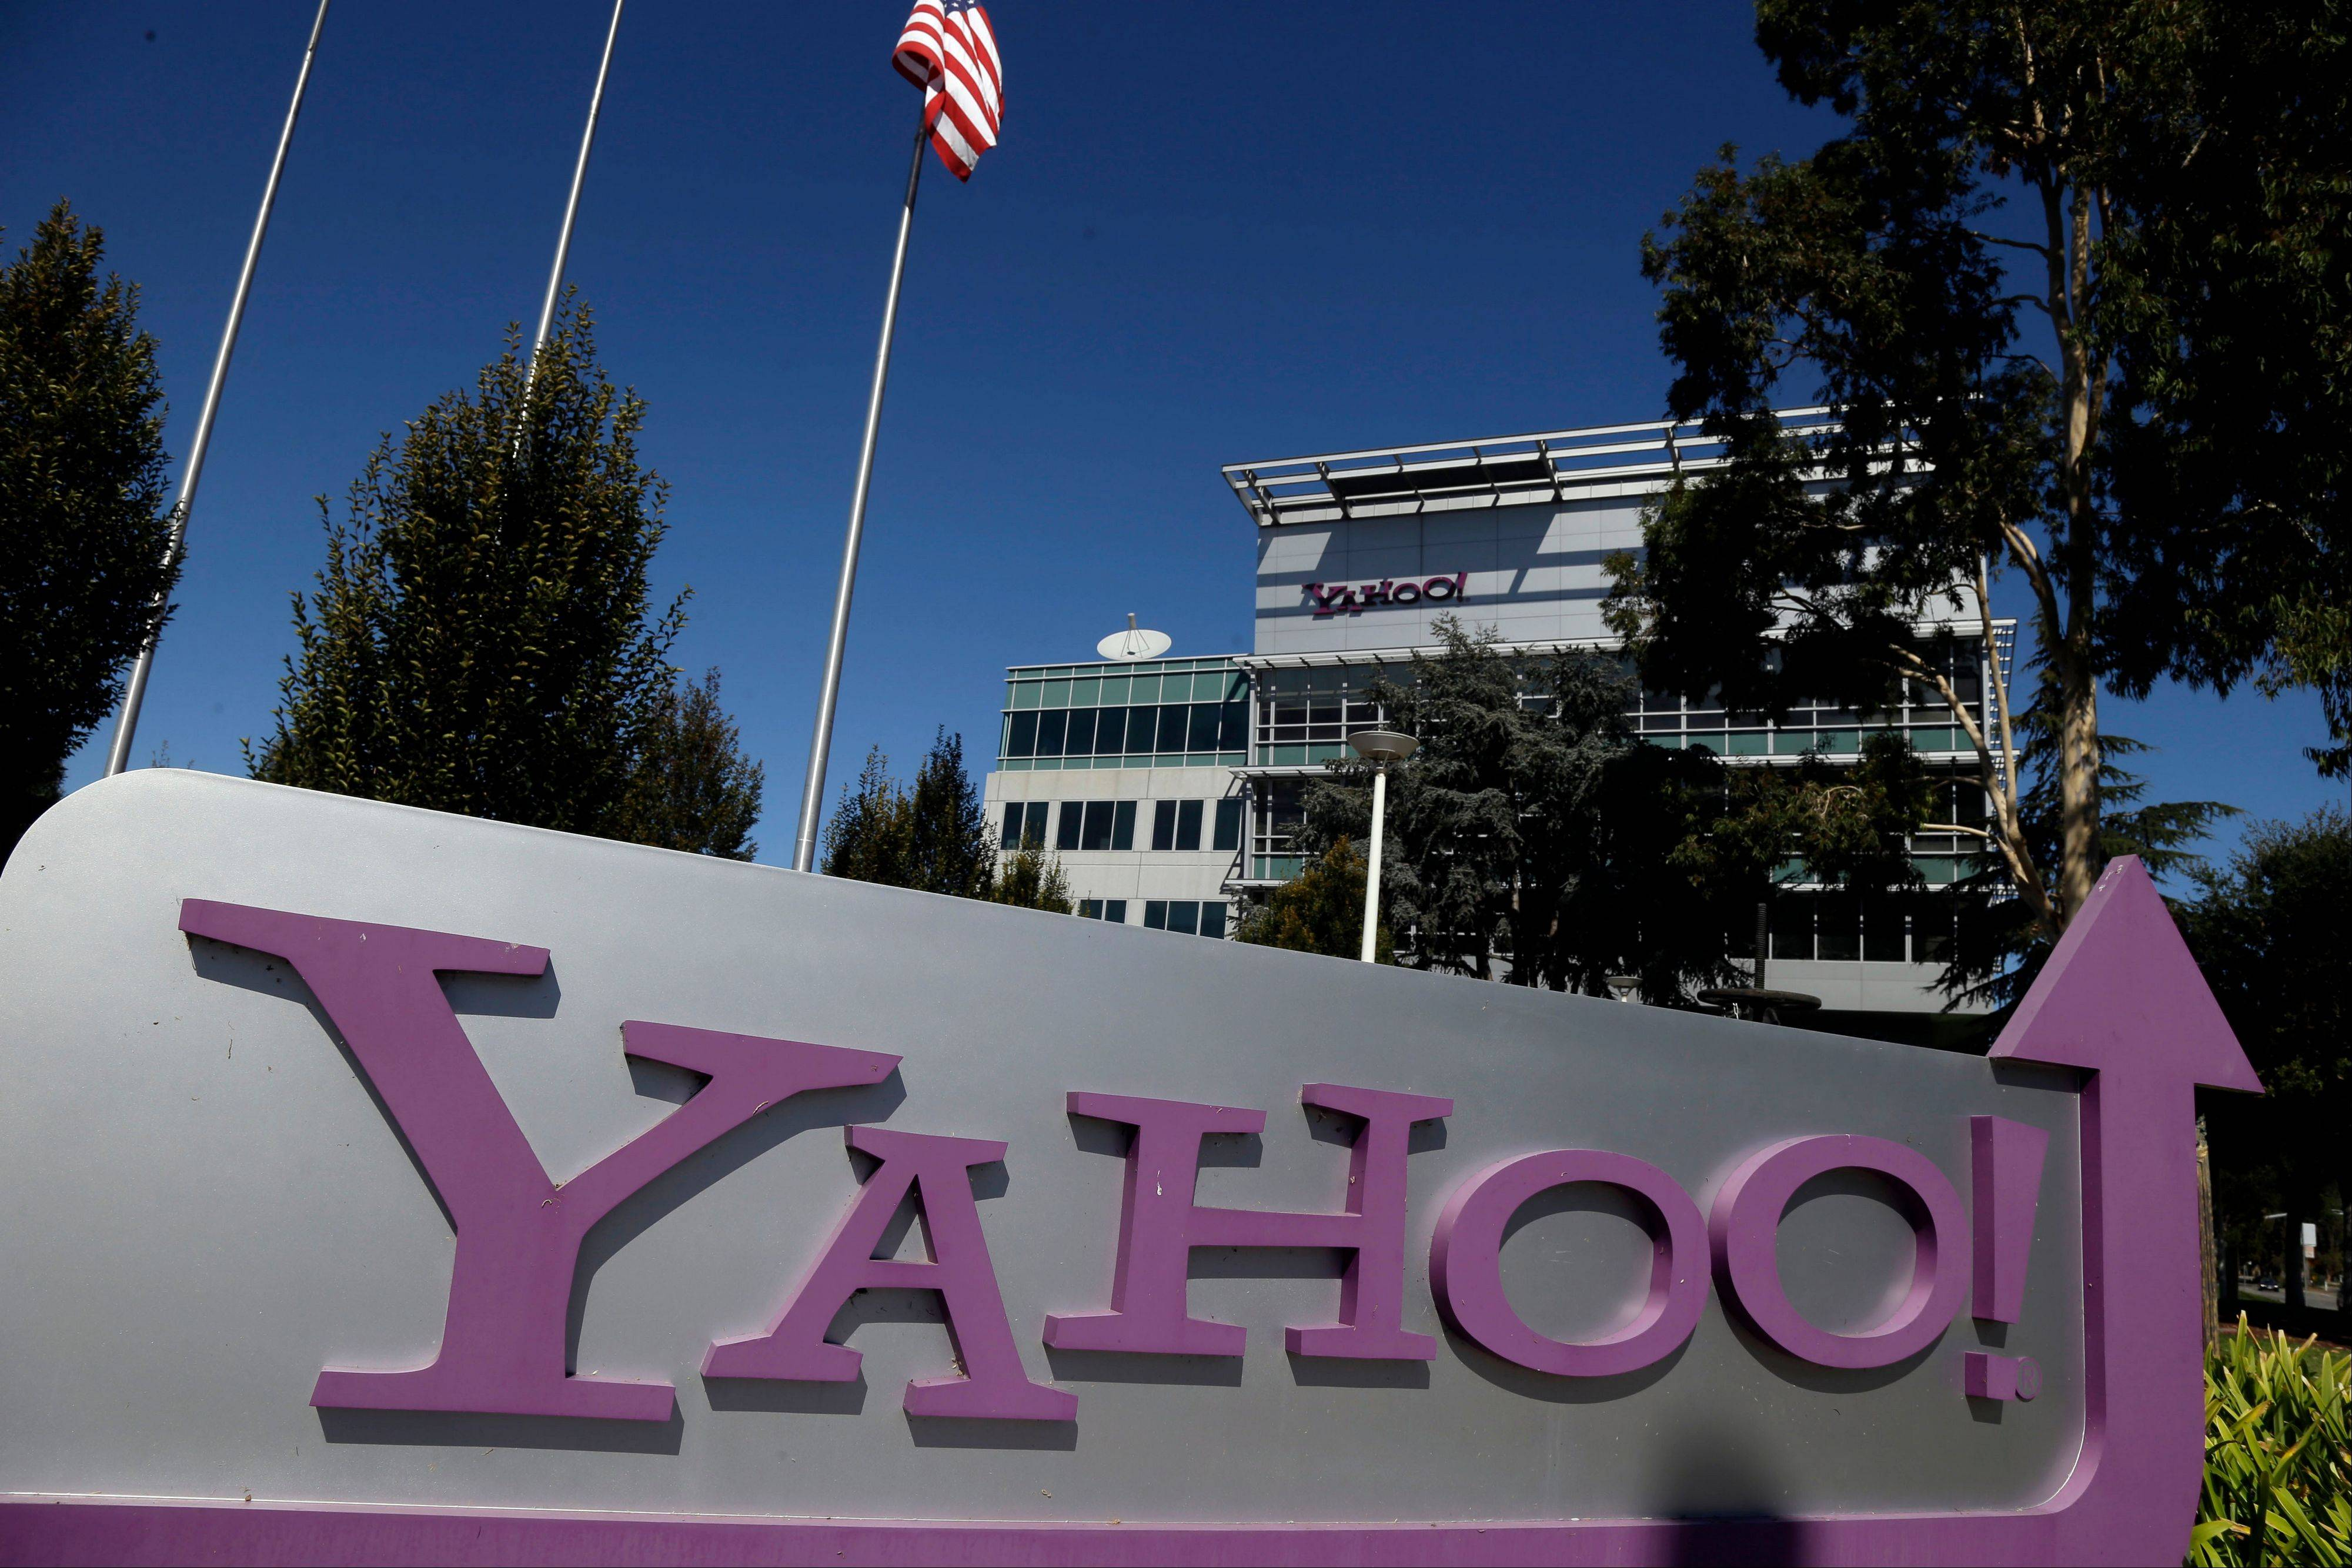 Yahoo, its stock price having undergone a healthy recovery, is buying back 40 million shares of its common stock.